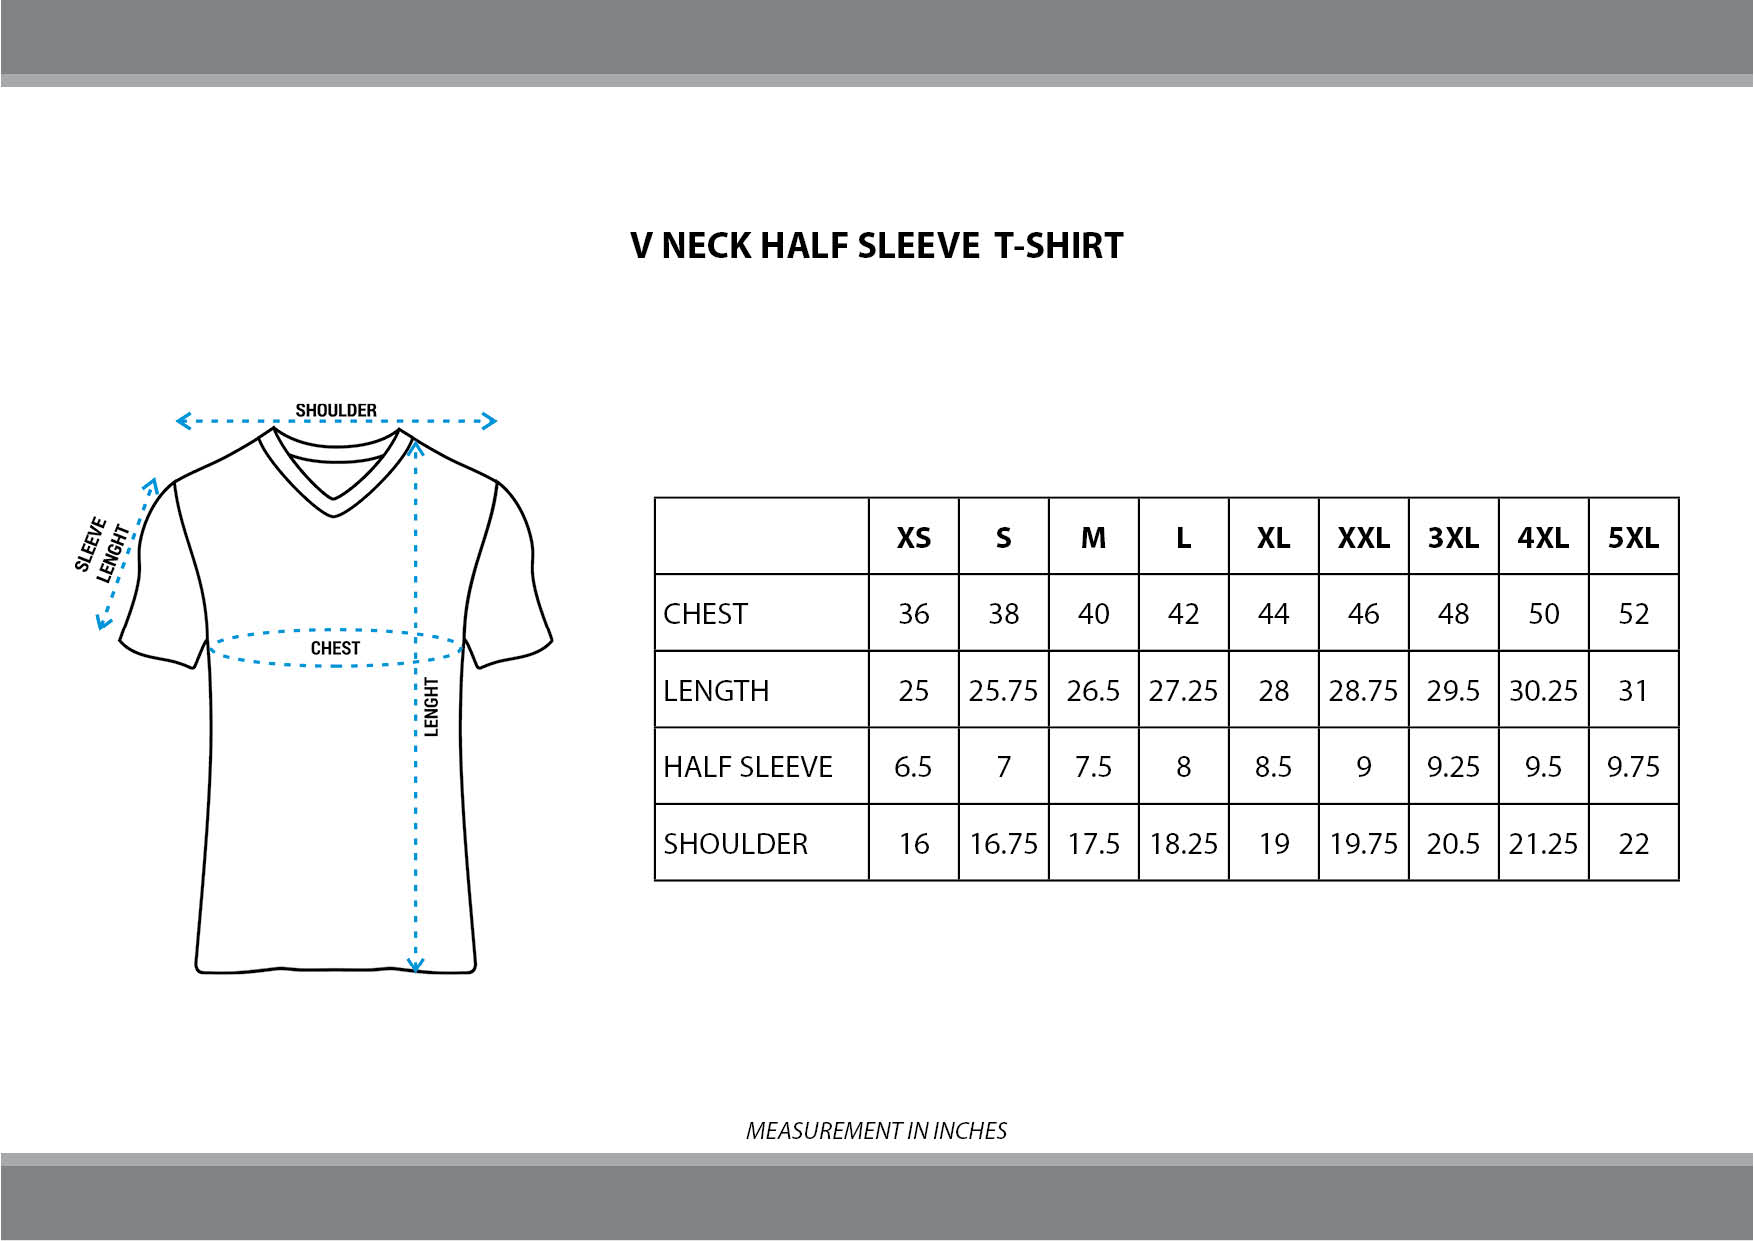 AOP V Neck Half Sleeve T-shirts